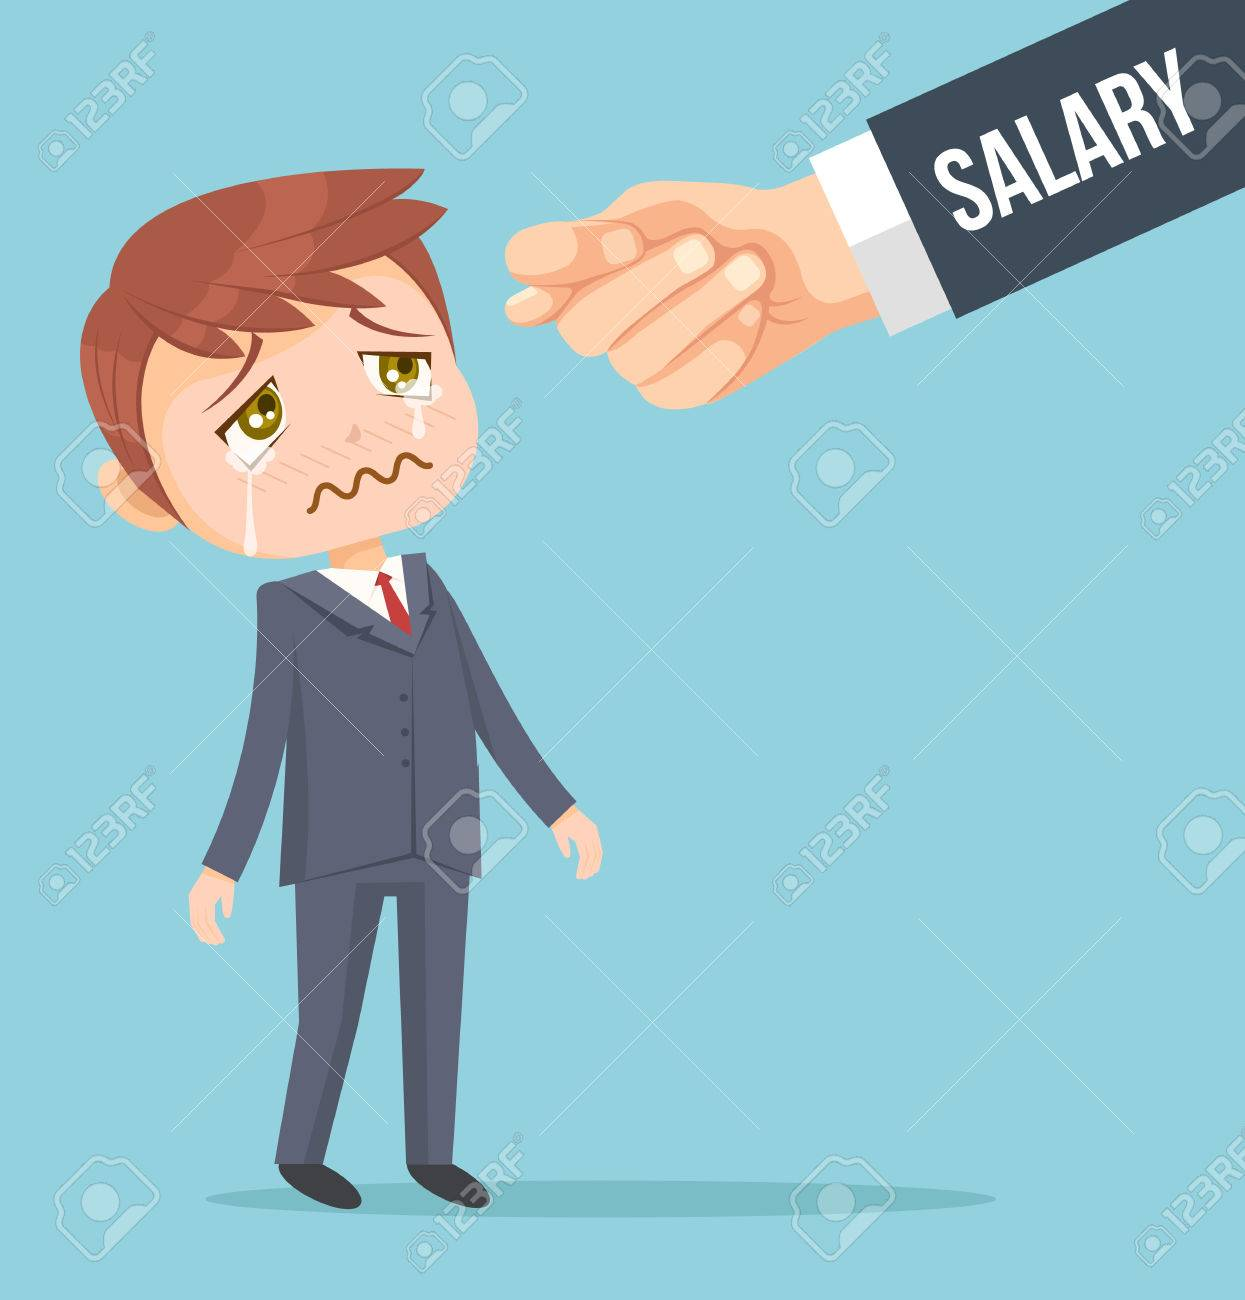 Scale clipart low wage. Free salary download clip